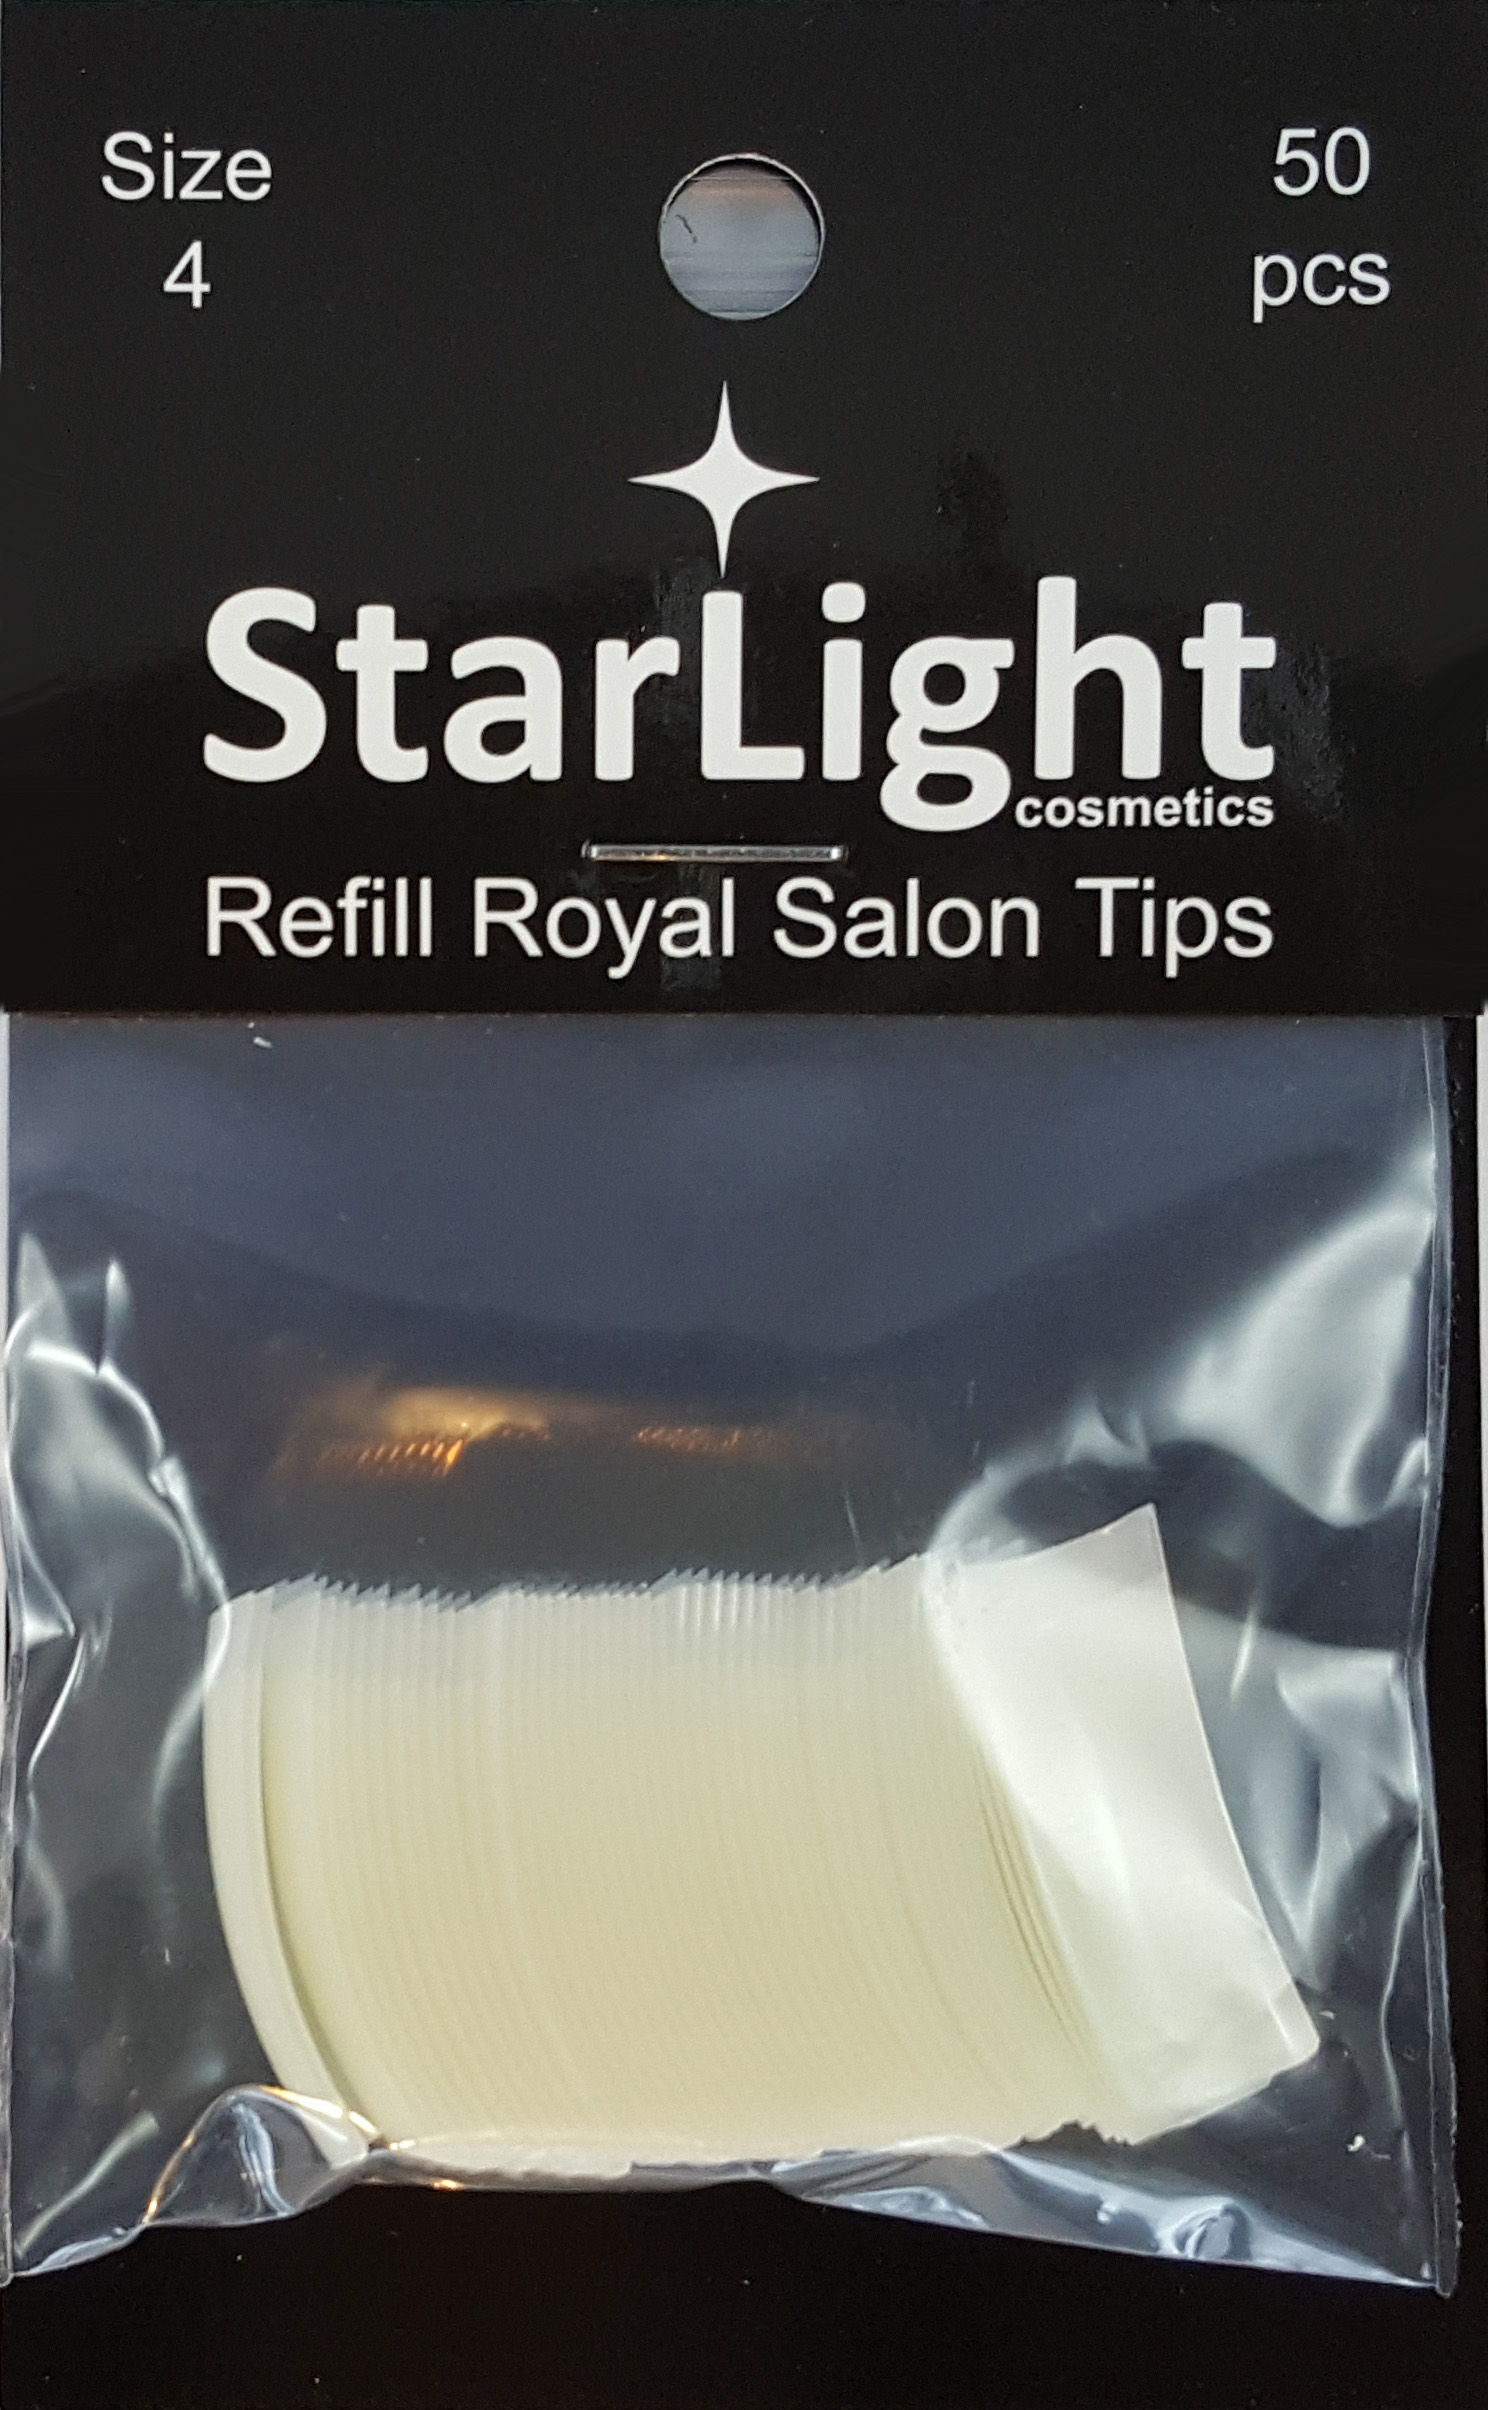 Naglar Royal Salon Tips Refill - 50 st Storlek 4